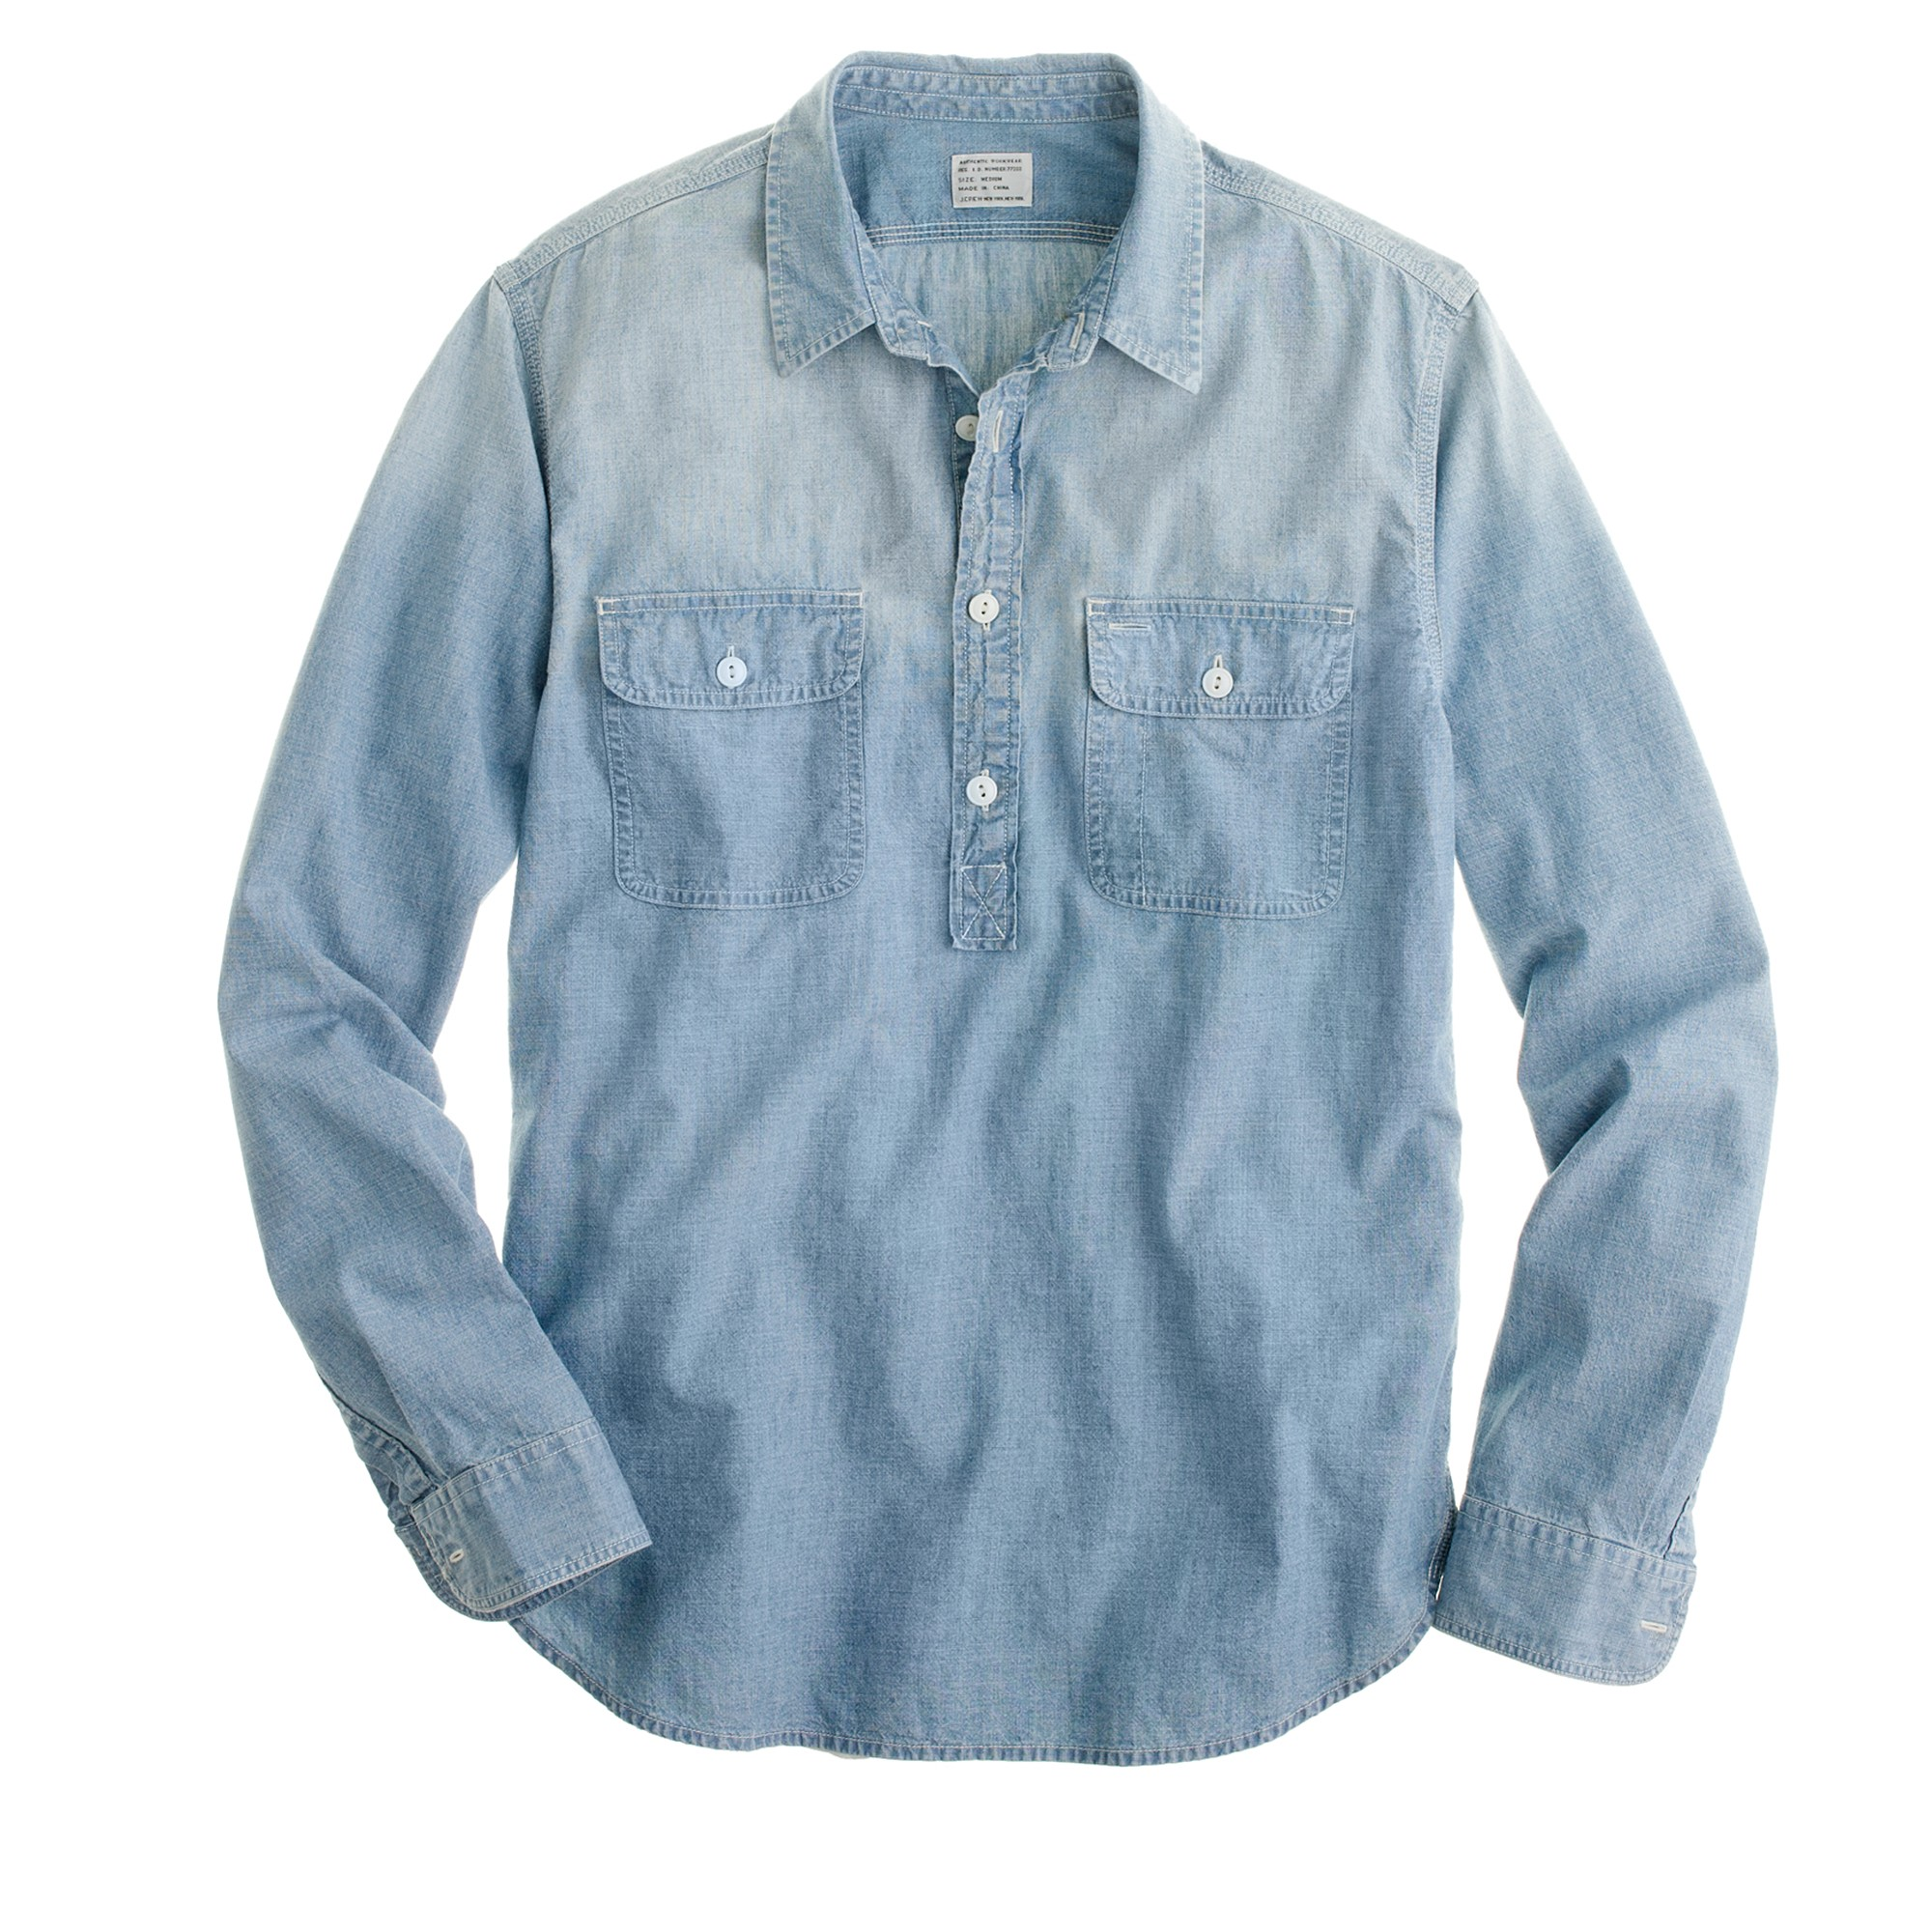 J.crew Half-placket Chambray Shirt in Blue for Men